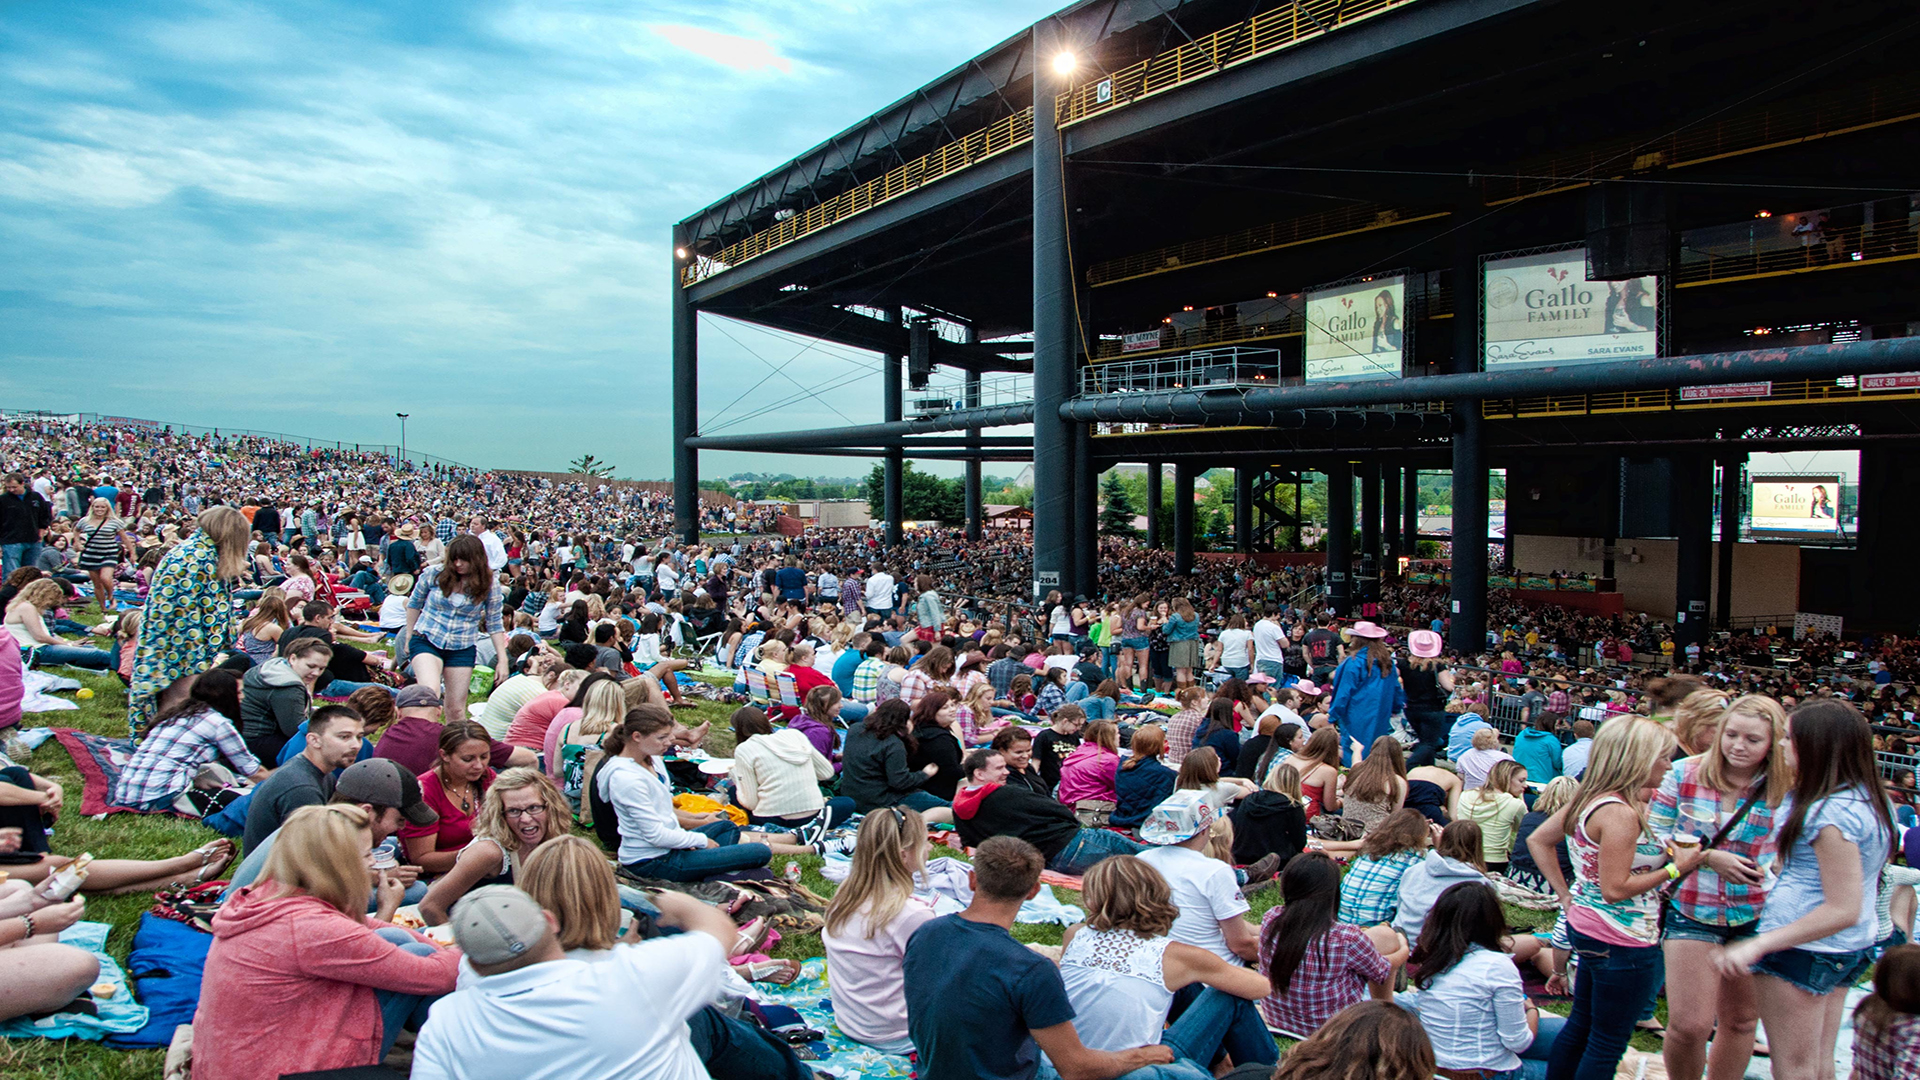 hollywood casino amphitheatre chicago